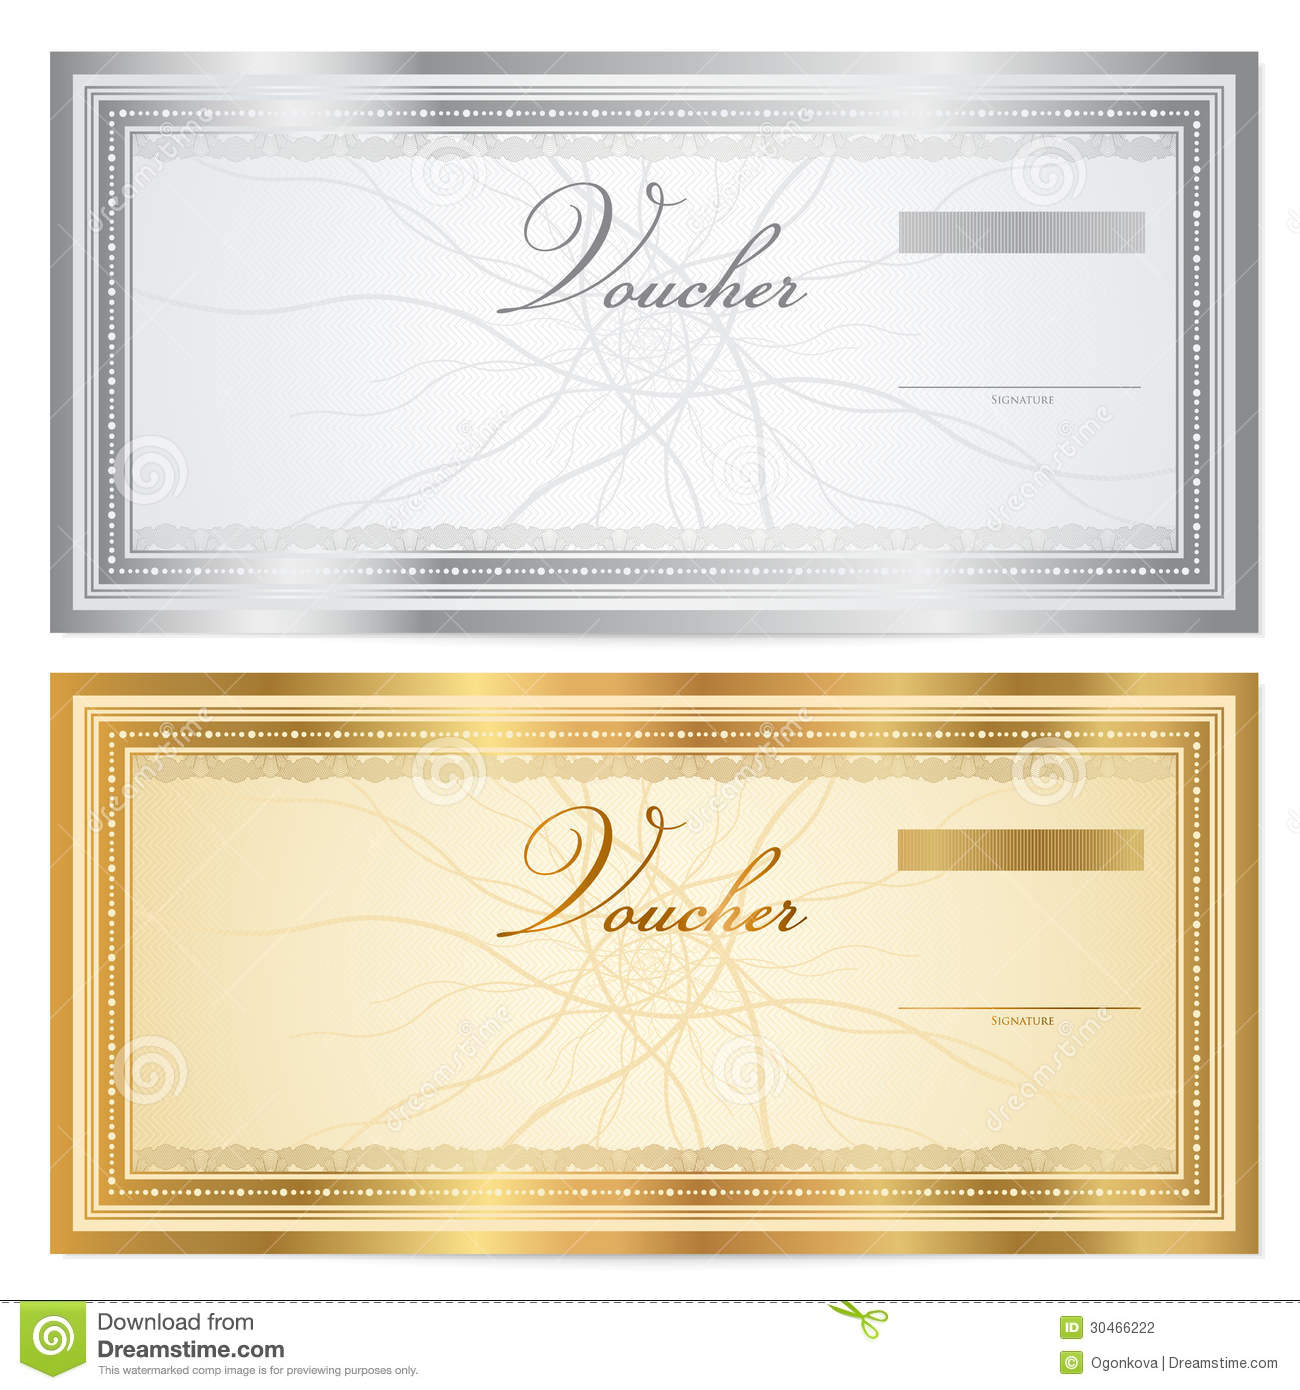 doc coupon template homemade coupon templates vintage voucher coupon template border photography coupon template